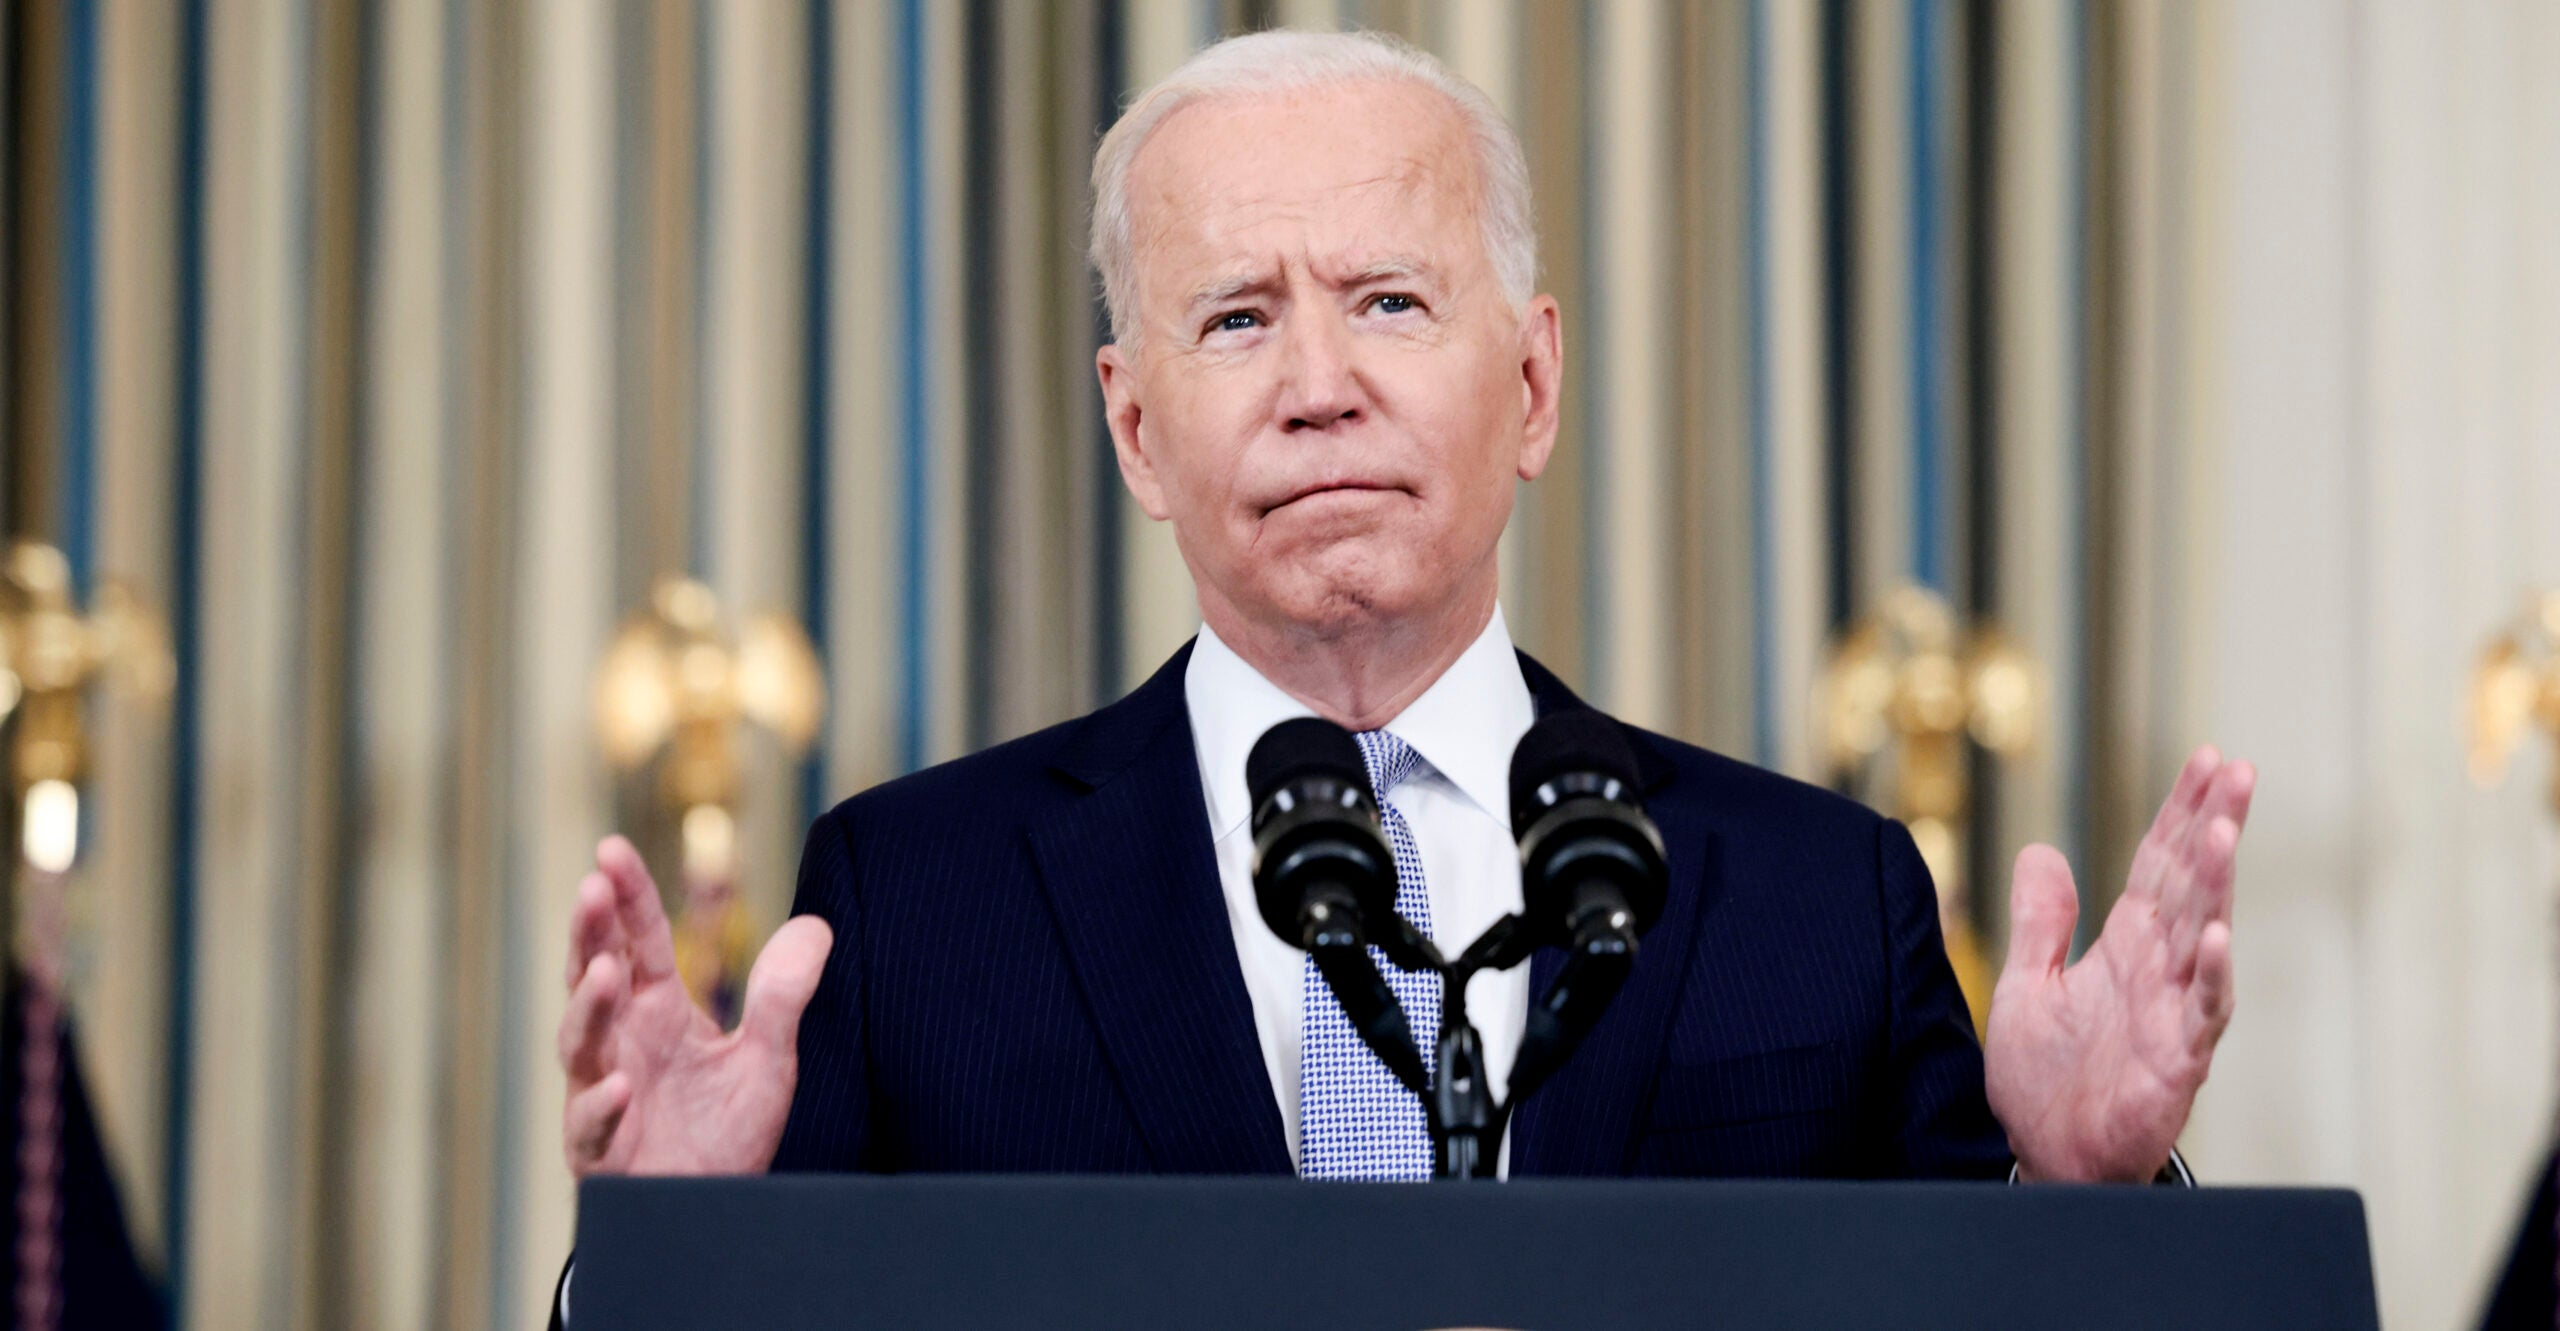 Biden Struggles to Corral His Party Over Trillions in Spending